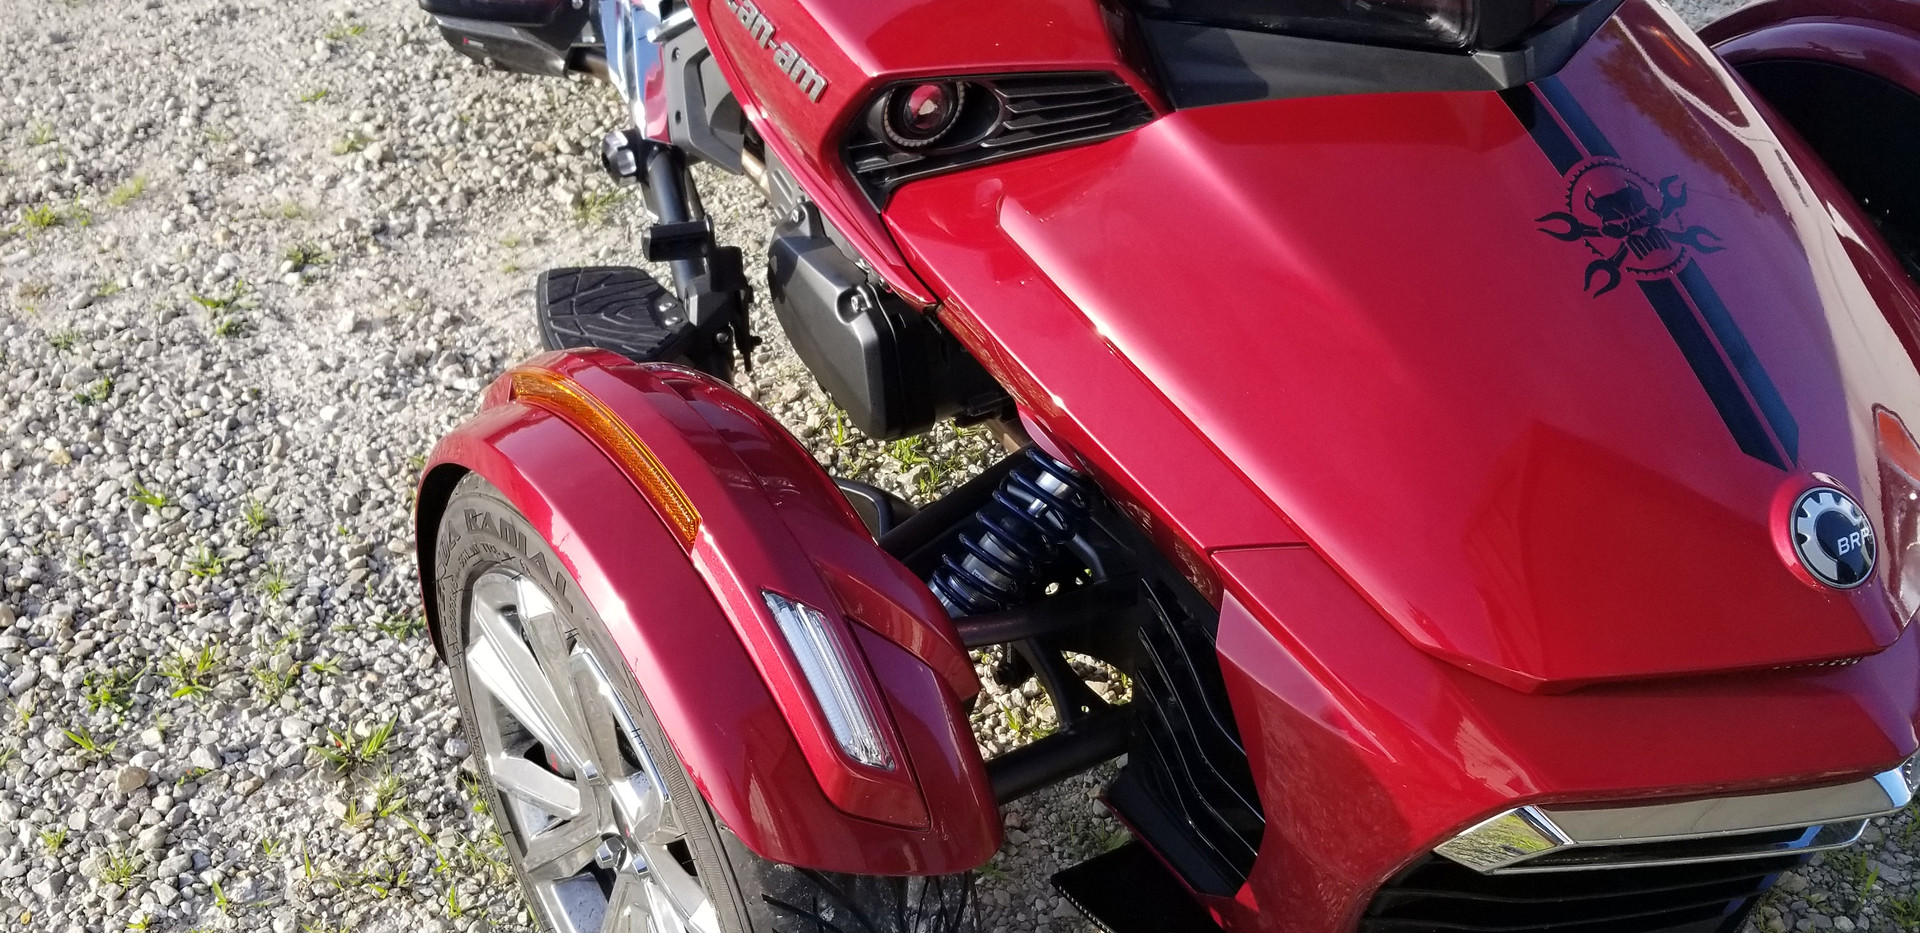 M2.Shocks for Can Am Spyder